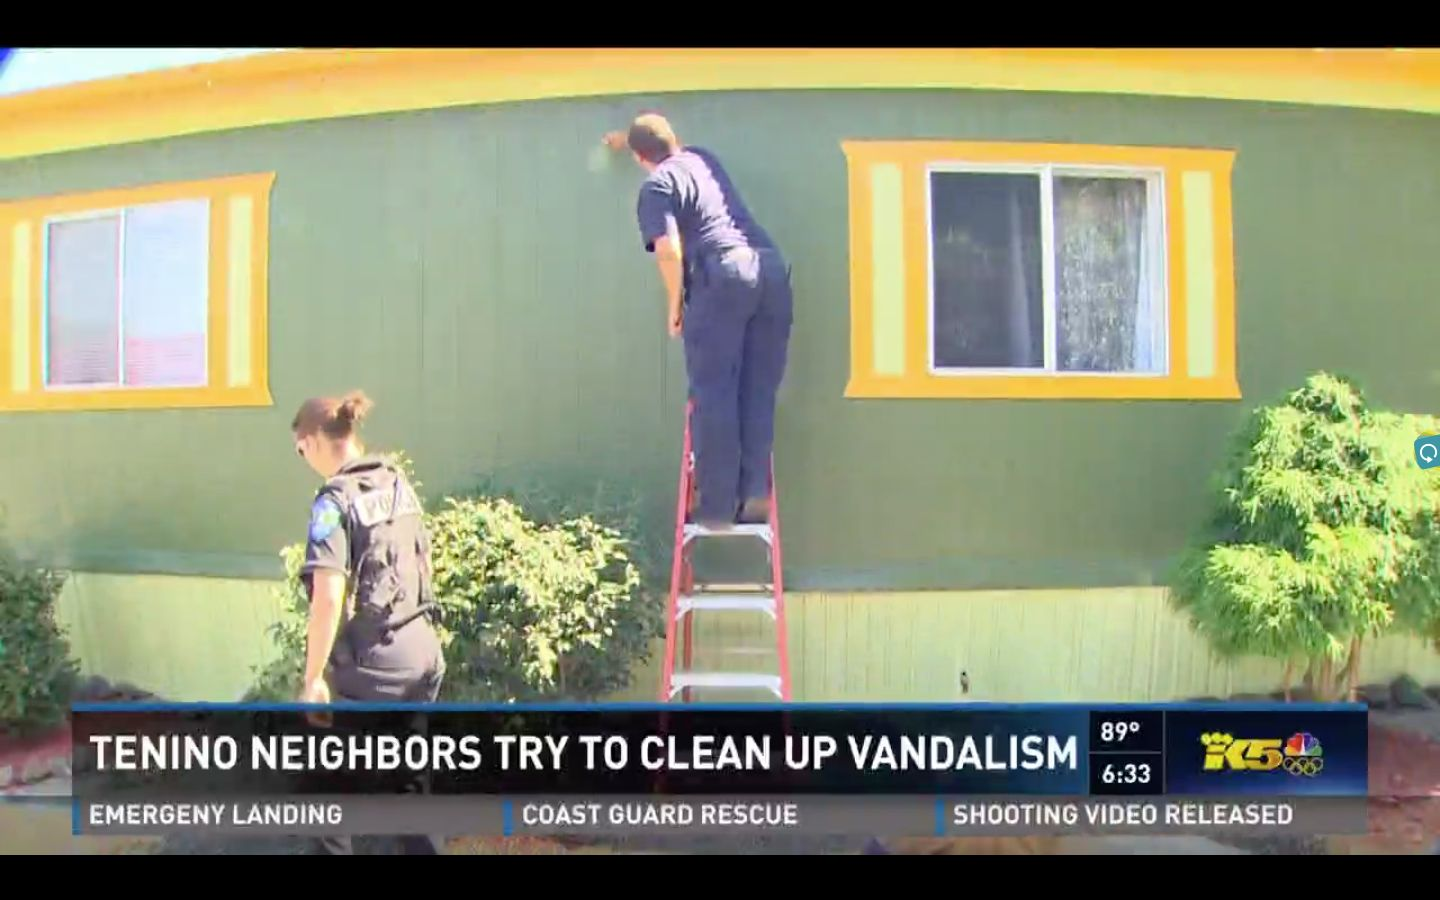 Volunteers, including a local police officer and firefighter, were seen joining in the cleaning efforts.